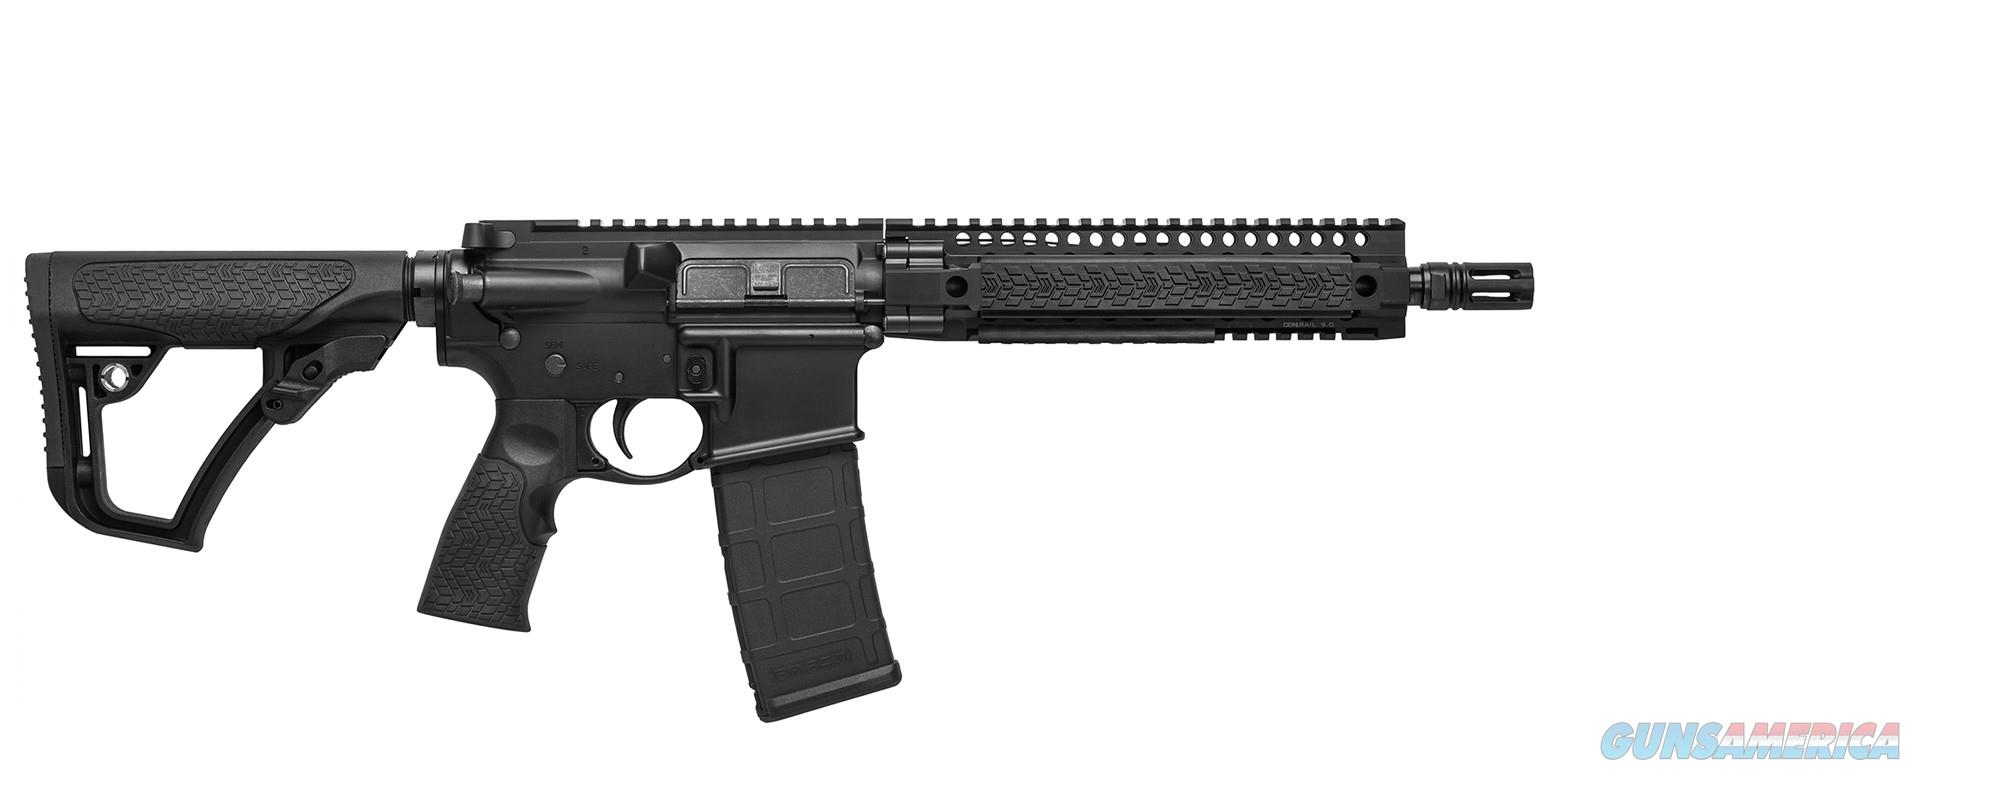 "Daniel Defense M4 300S 10.3"" SBR 02-122-17026-047  Guns > Rifles > Daniel Defense > Complete Rifles"